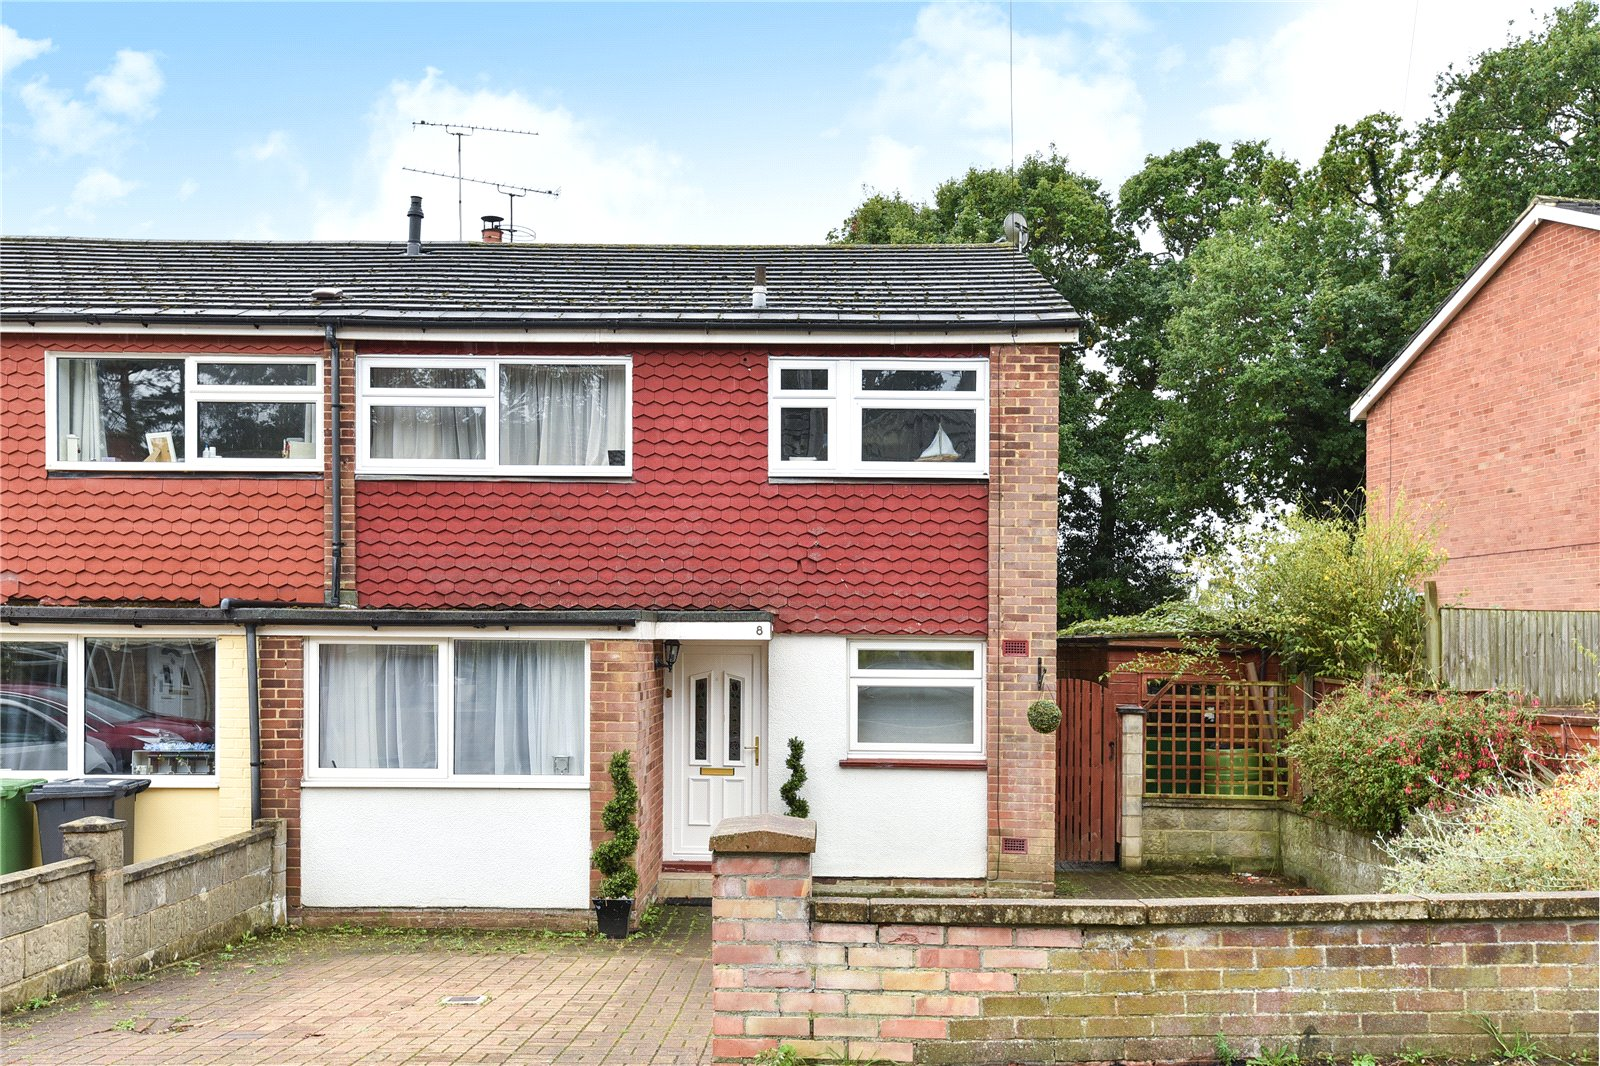 3 Bedrooms House for sale in Evergreen Road, Frimley, Camberley, Surrey, GU16